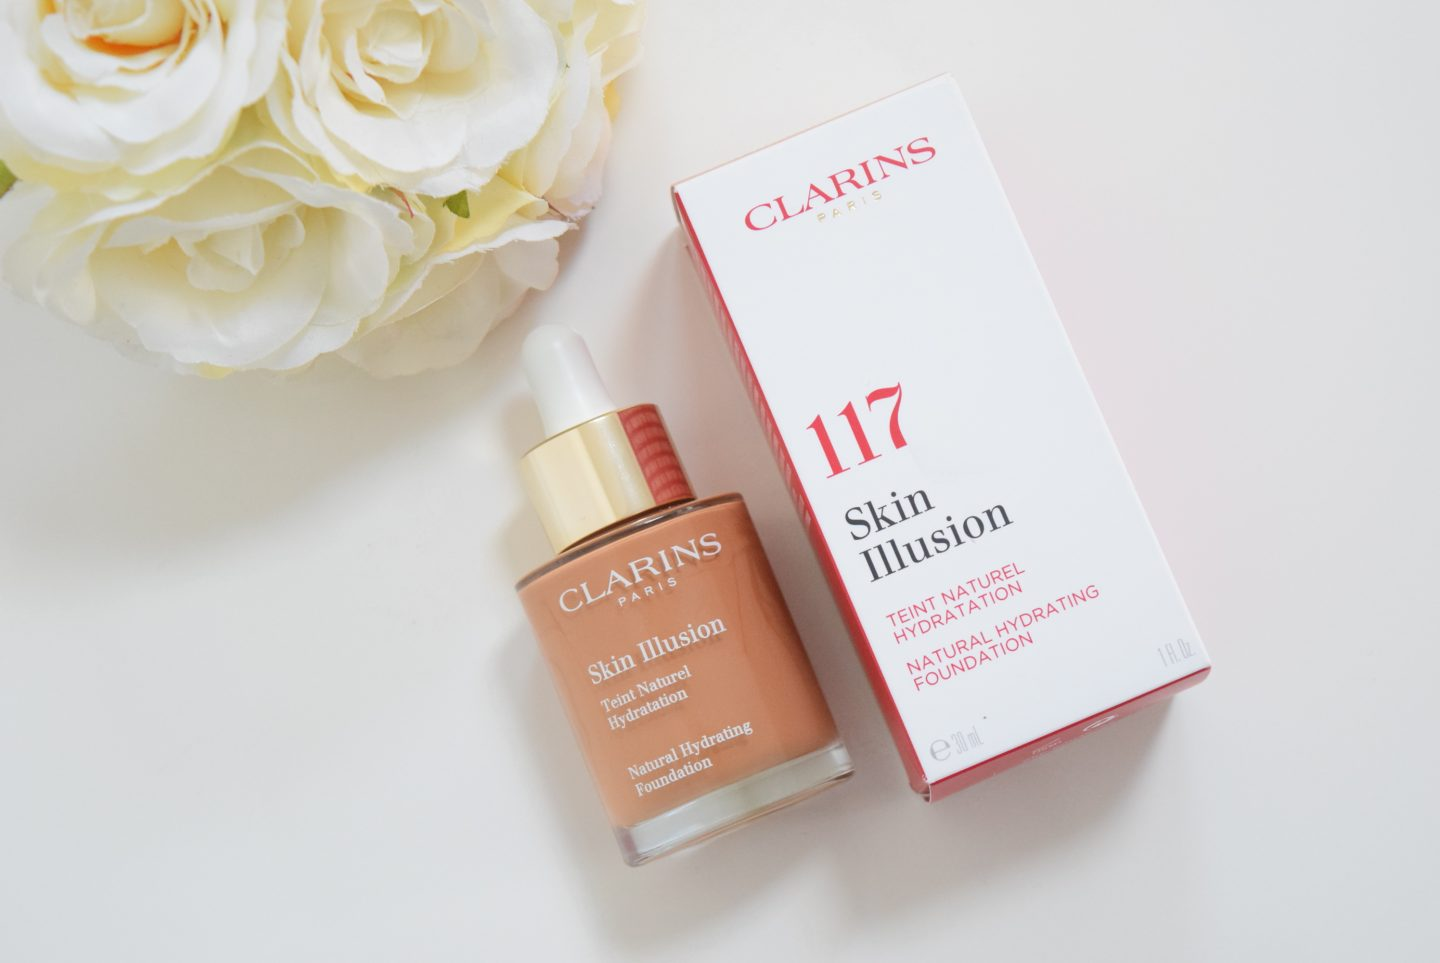 Review: Clarins Skin Illusion | Avis: Clarins Skin Illusion